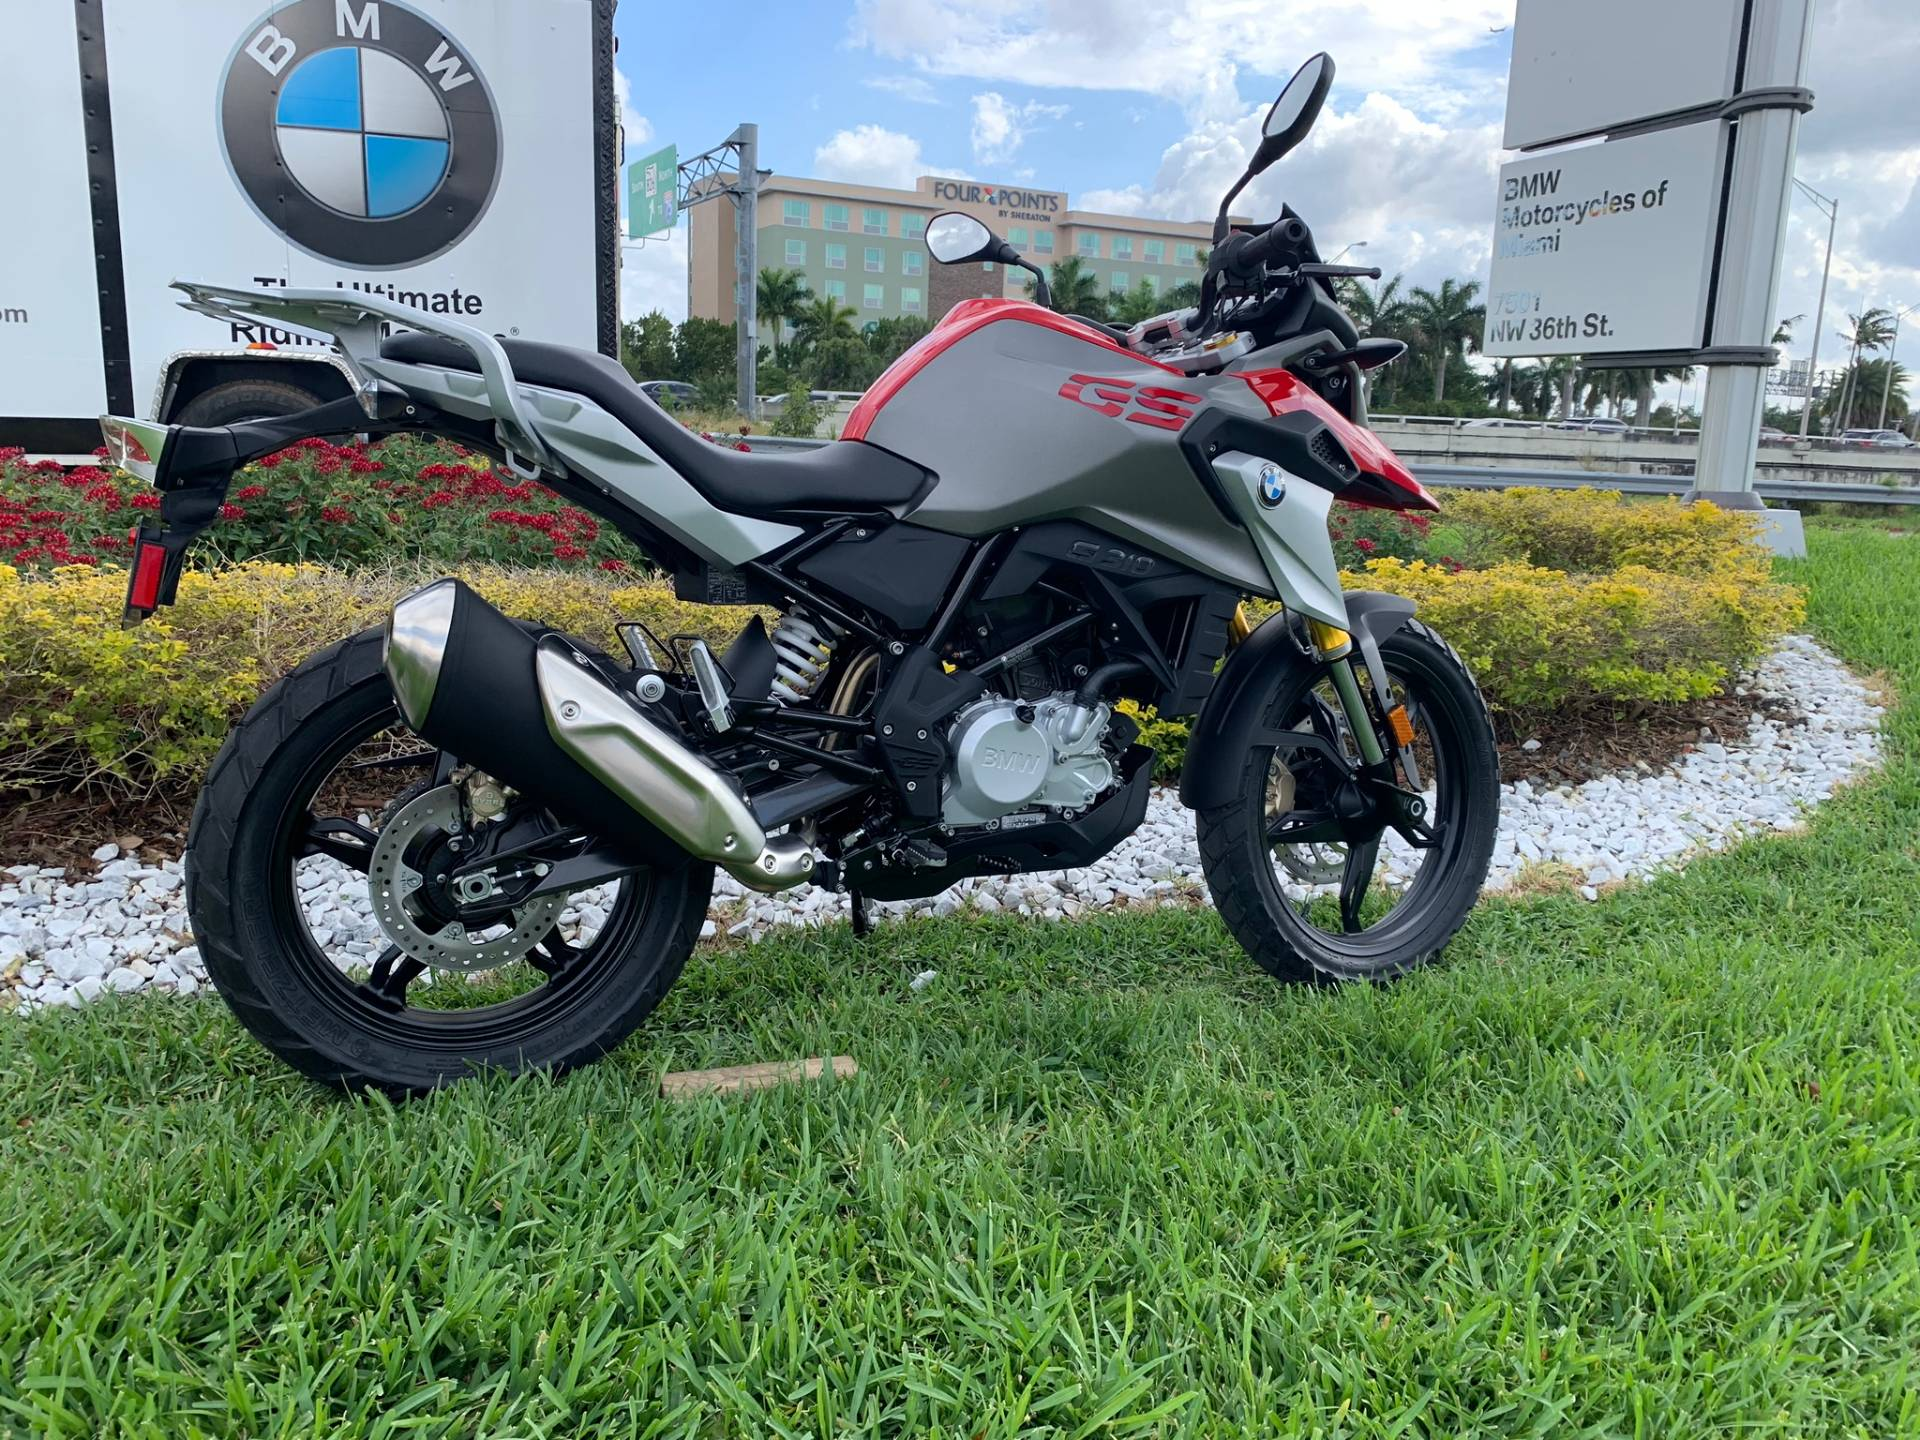 New 2019 BMW G 310 GS for sale, BMW G 310GS for sale, BMW Motorcycle GS, new BMW GS, Spirit of GS, BMW Motorcycles of Miami, Motorcycles of Miami, Motorcycles Miami, New Motorcycles, Used Motorcycles, pre-owned. #BMWMotorcyclesOfMiami #MotorcyclesOfMiami. - Photo 16